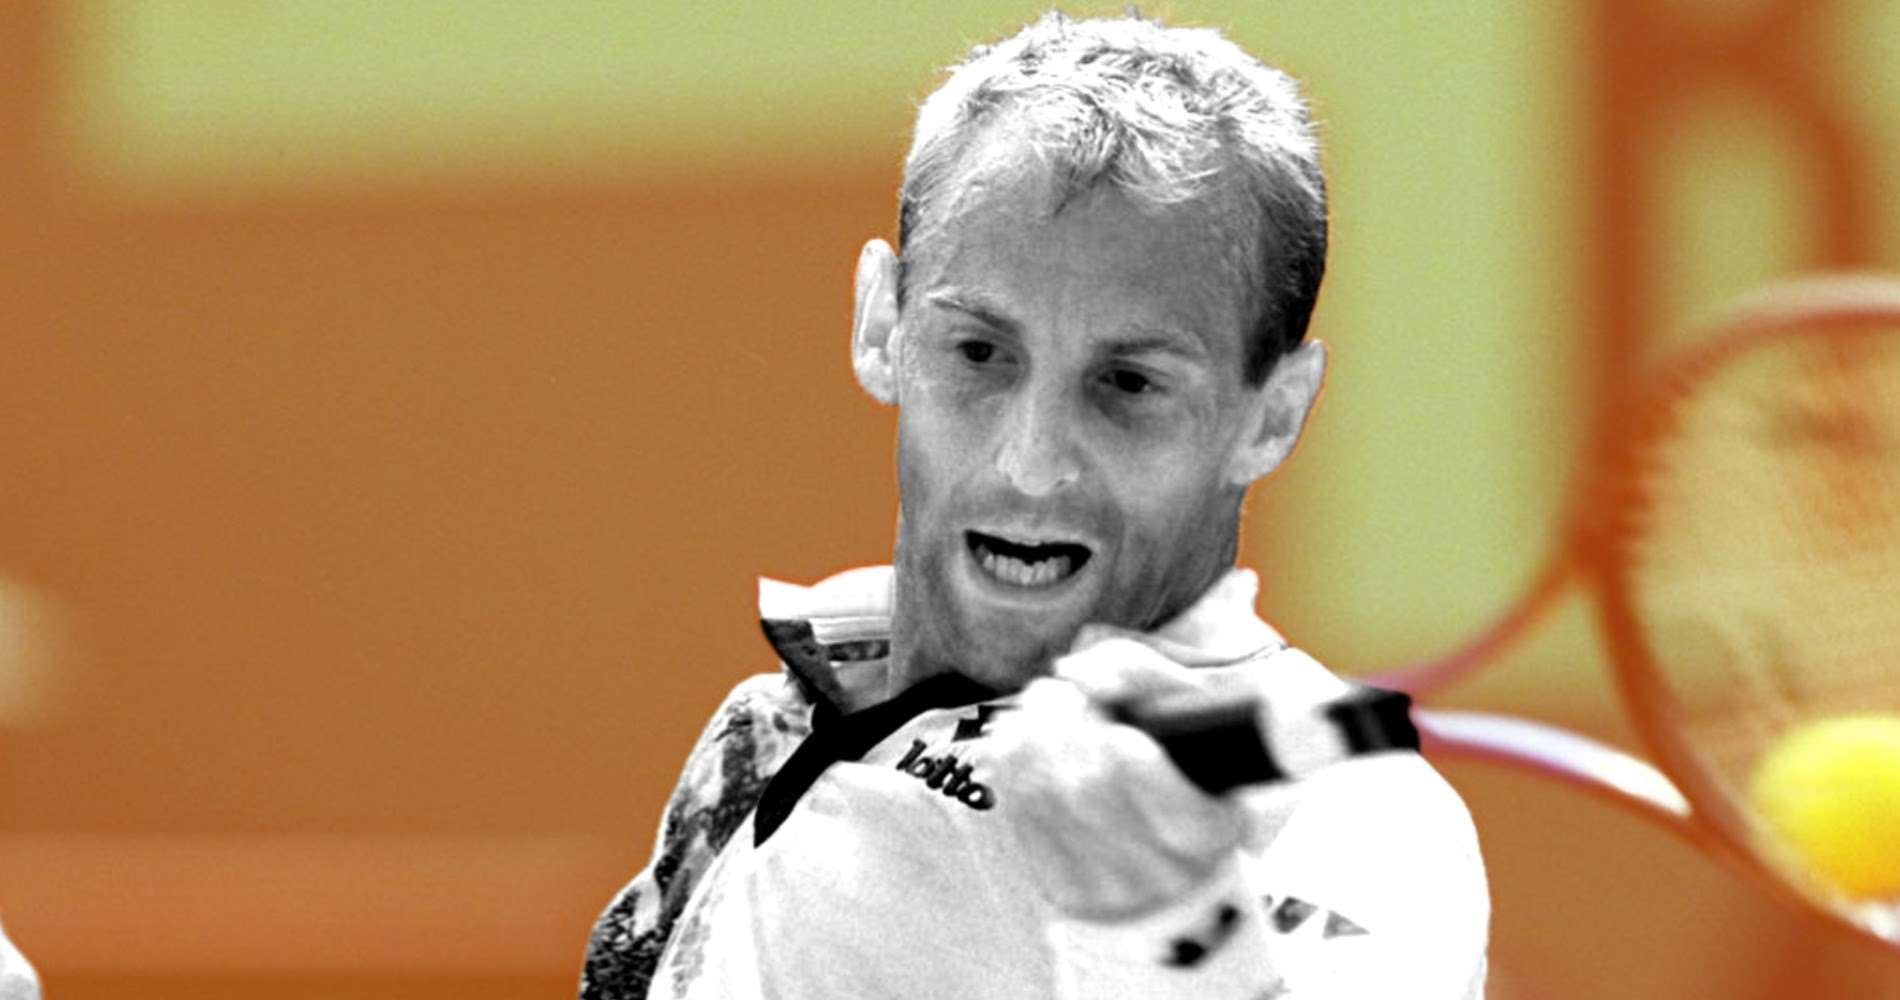 Thomas Muster, On This Day